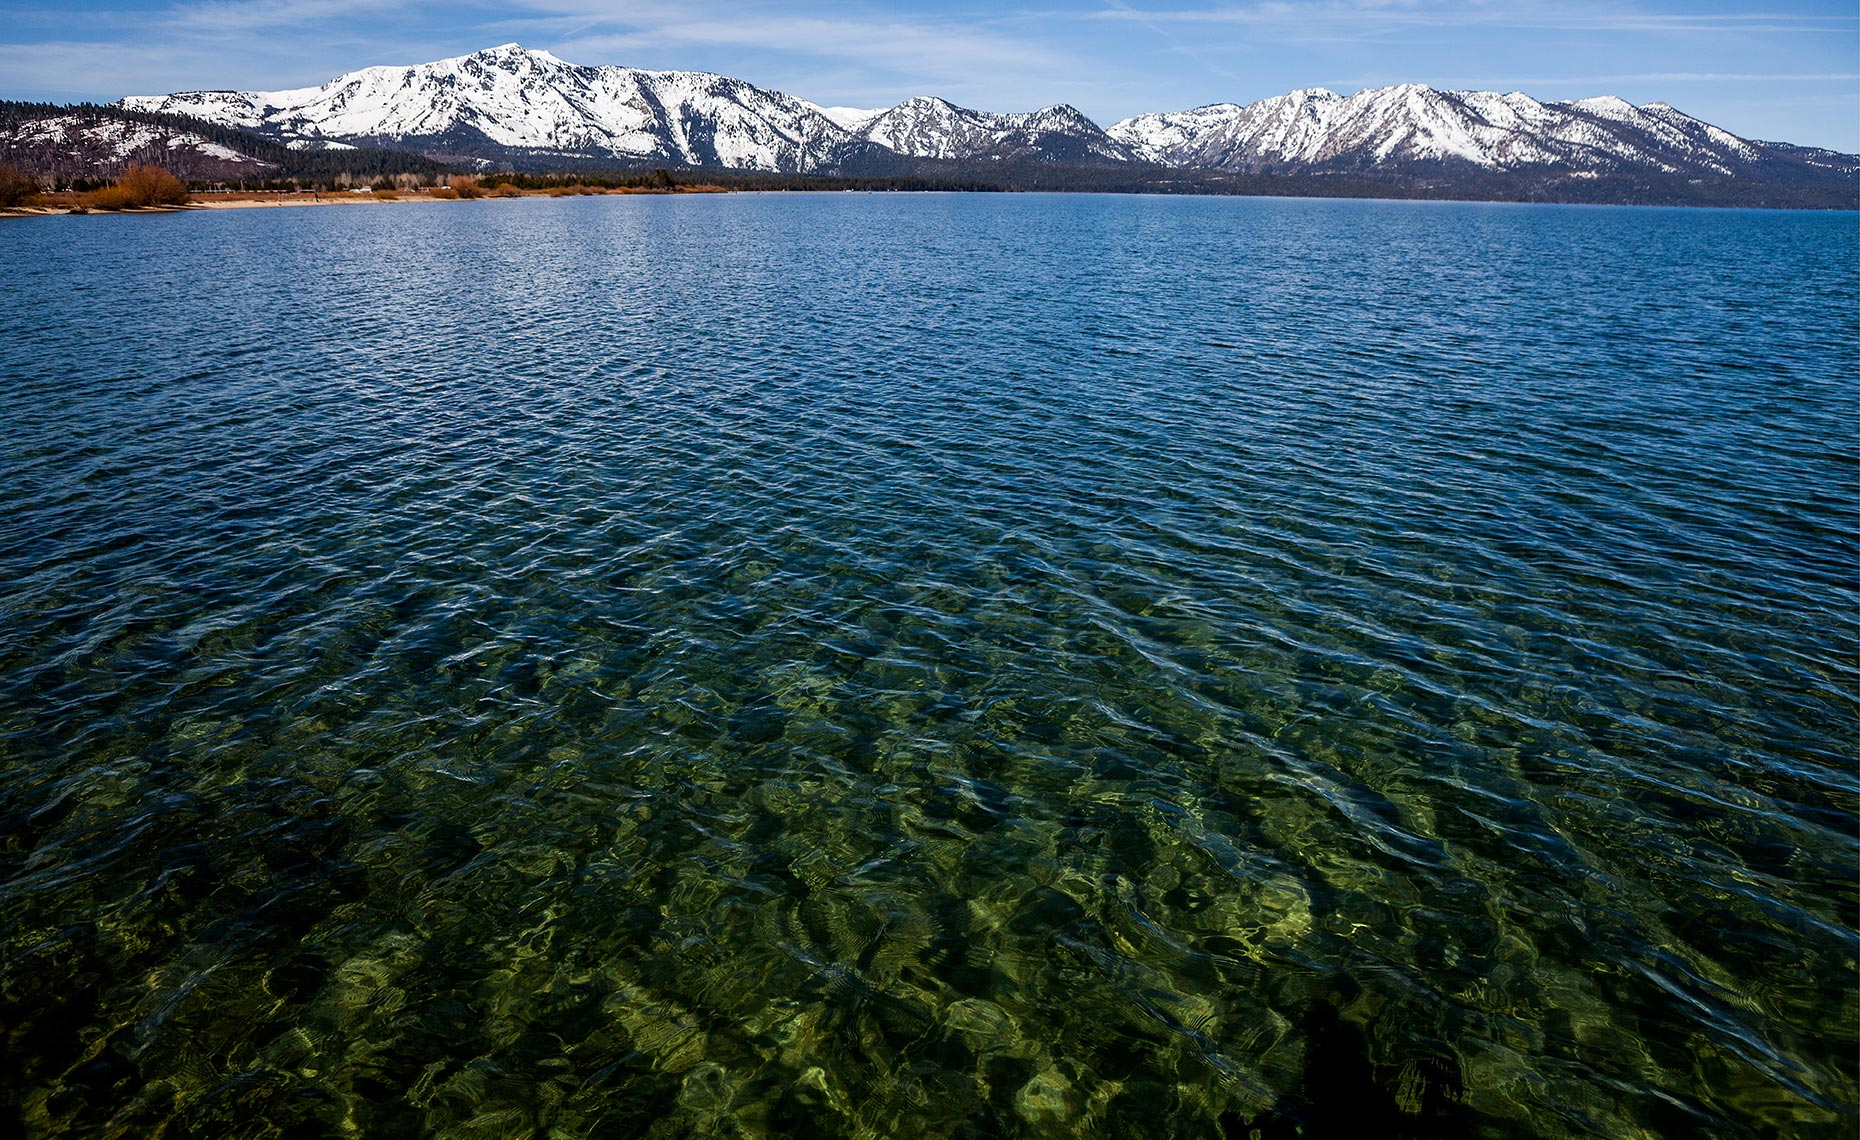 05_South_Lake_Tahoe_California_Environment_Landscape_Chris_Wellhausen_Photography.JPG